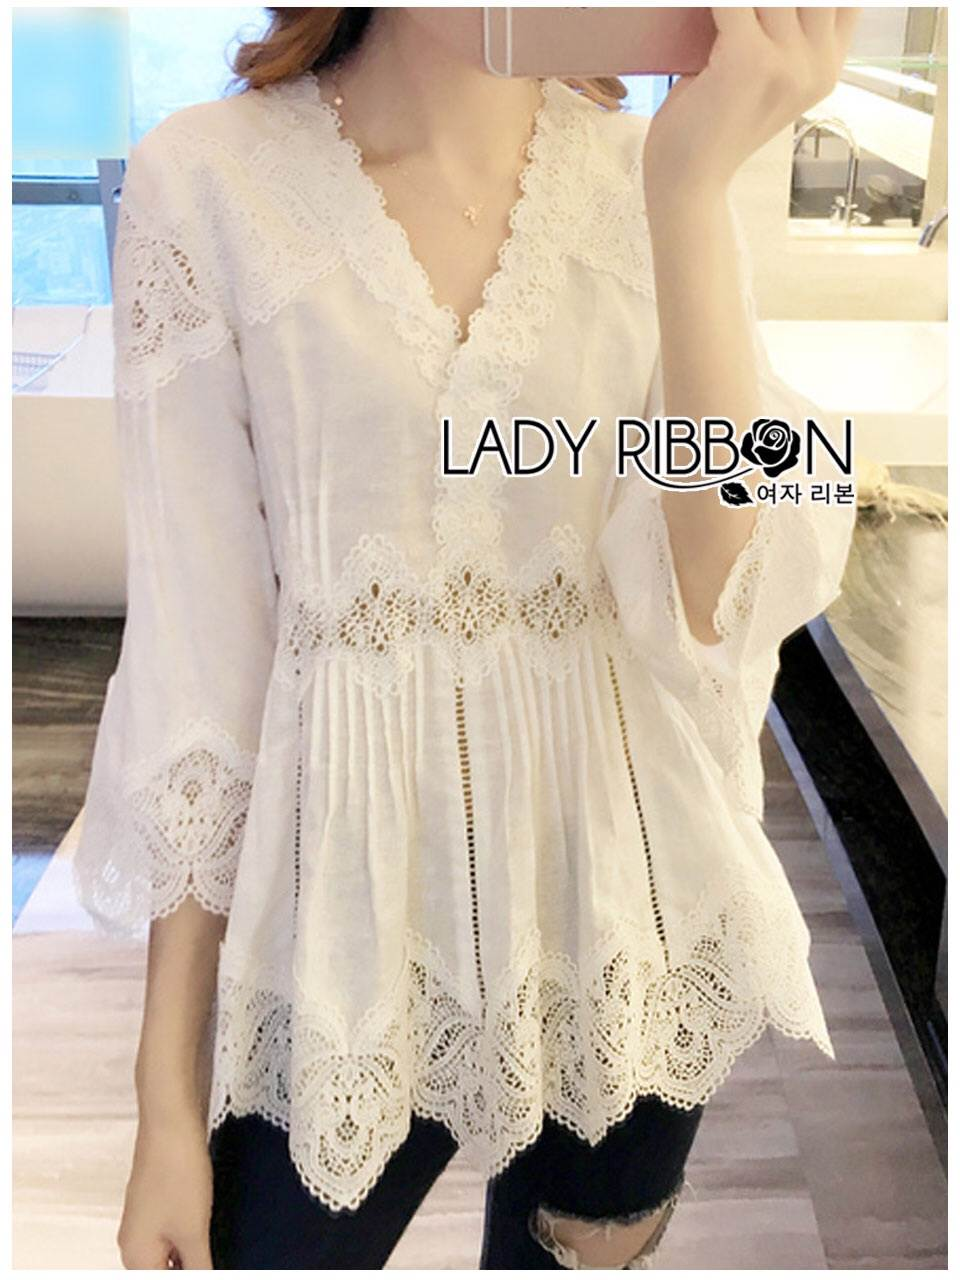 🎀 Lady Ribbon's Made 🎀 Lady Avril Vintage White Cotton and Lace Long Blouse